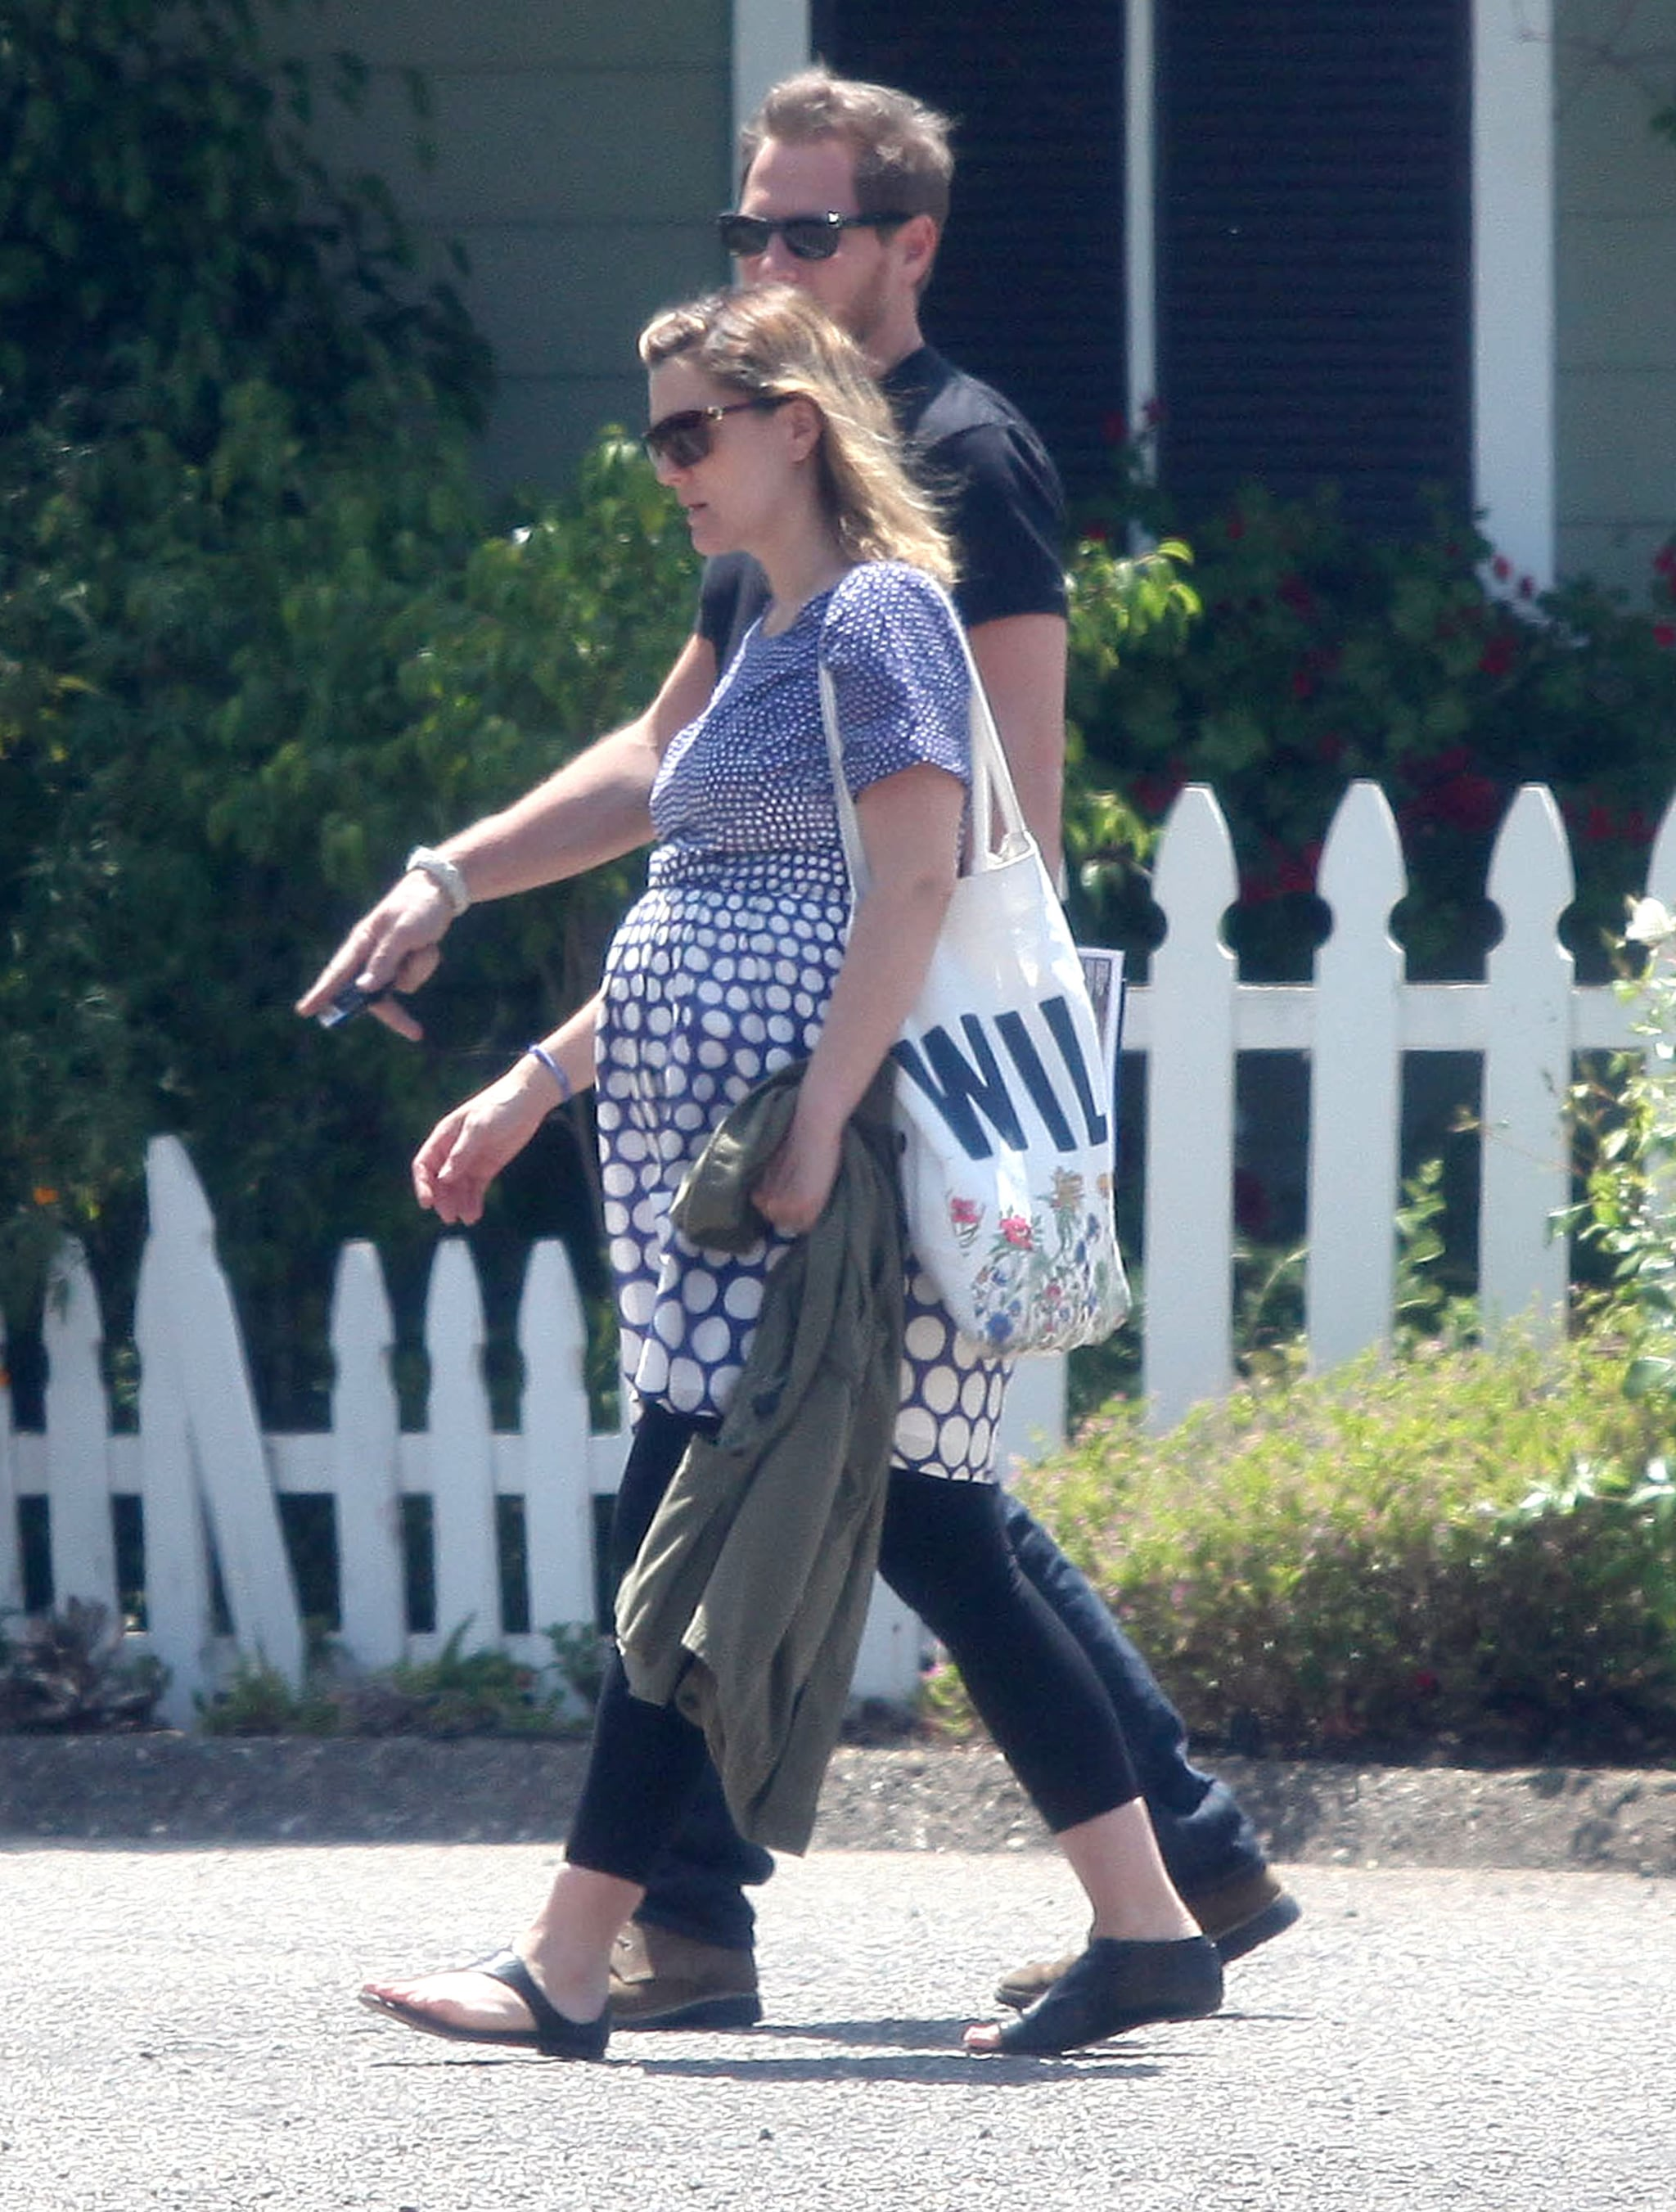 Drew Barrymore and new husband Will Kopelman took a walk together on their honeymoon in Montecito.